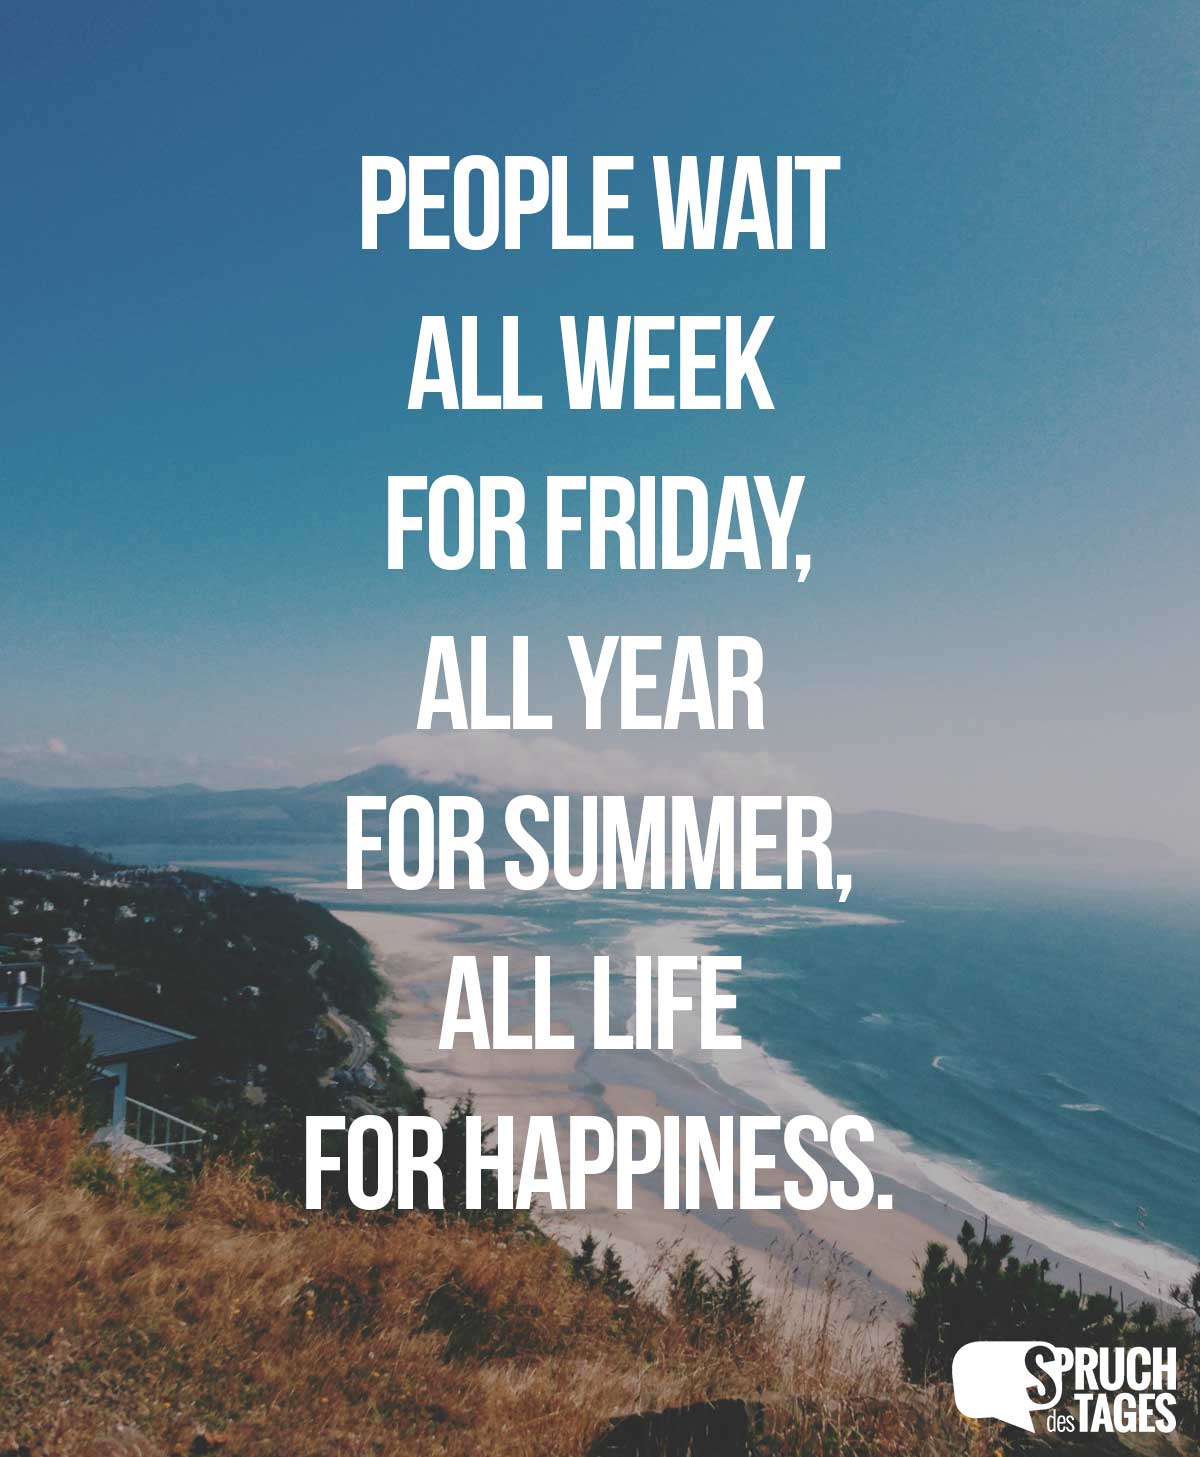 People wait all week for Friday. All year for summer. All life for